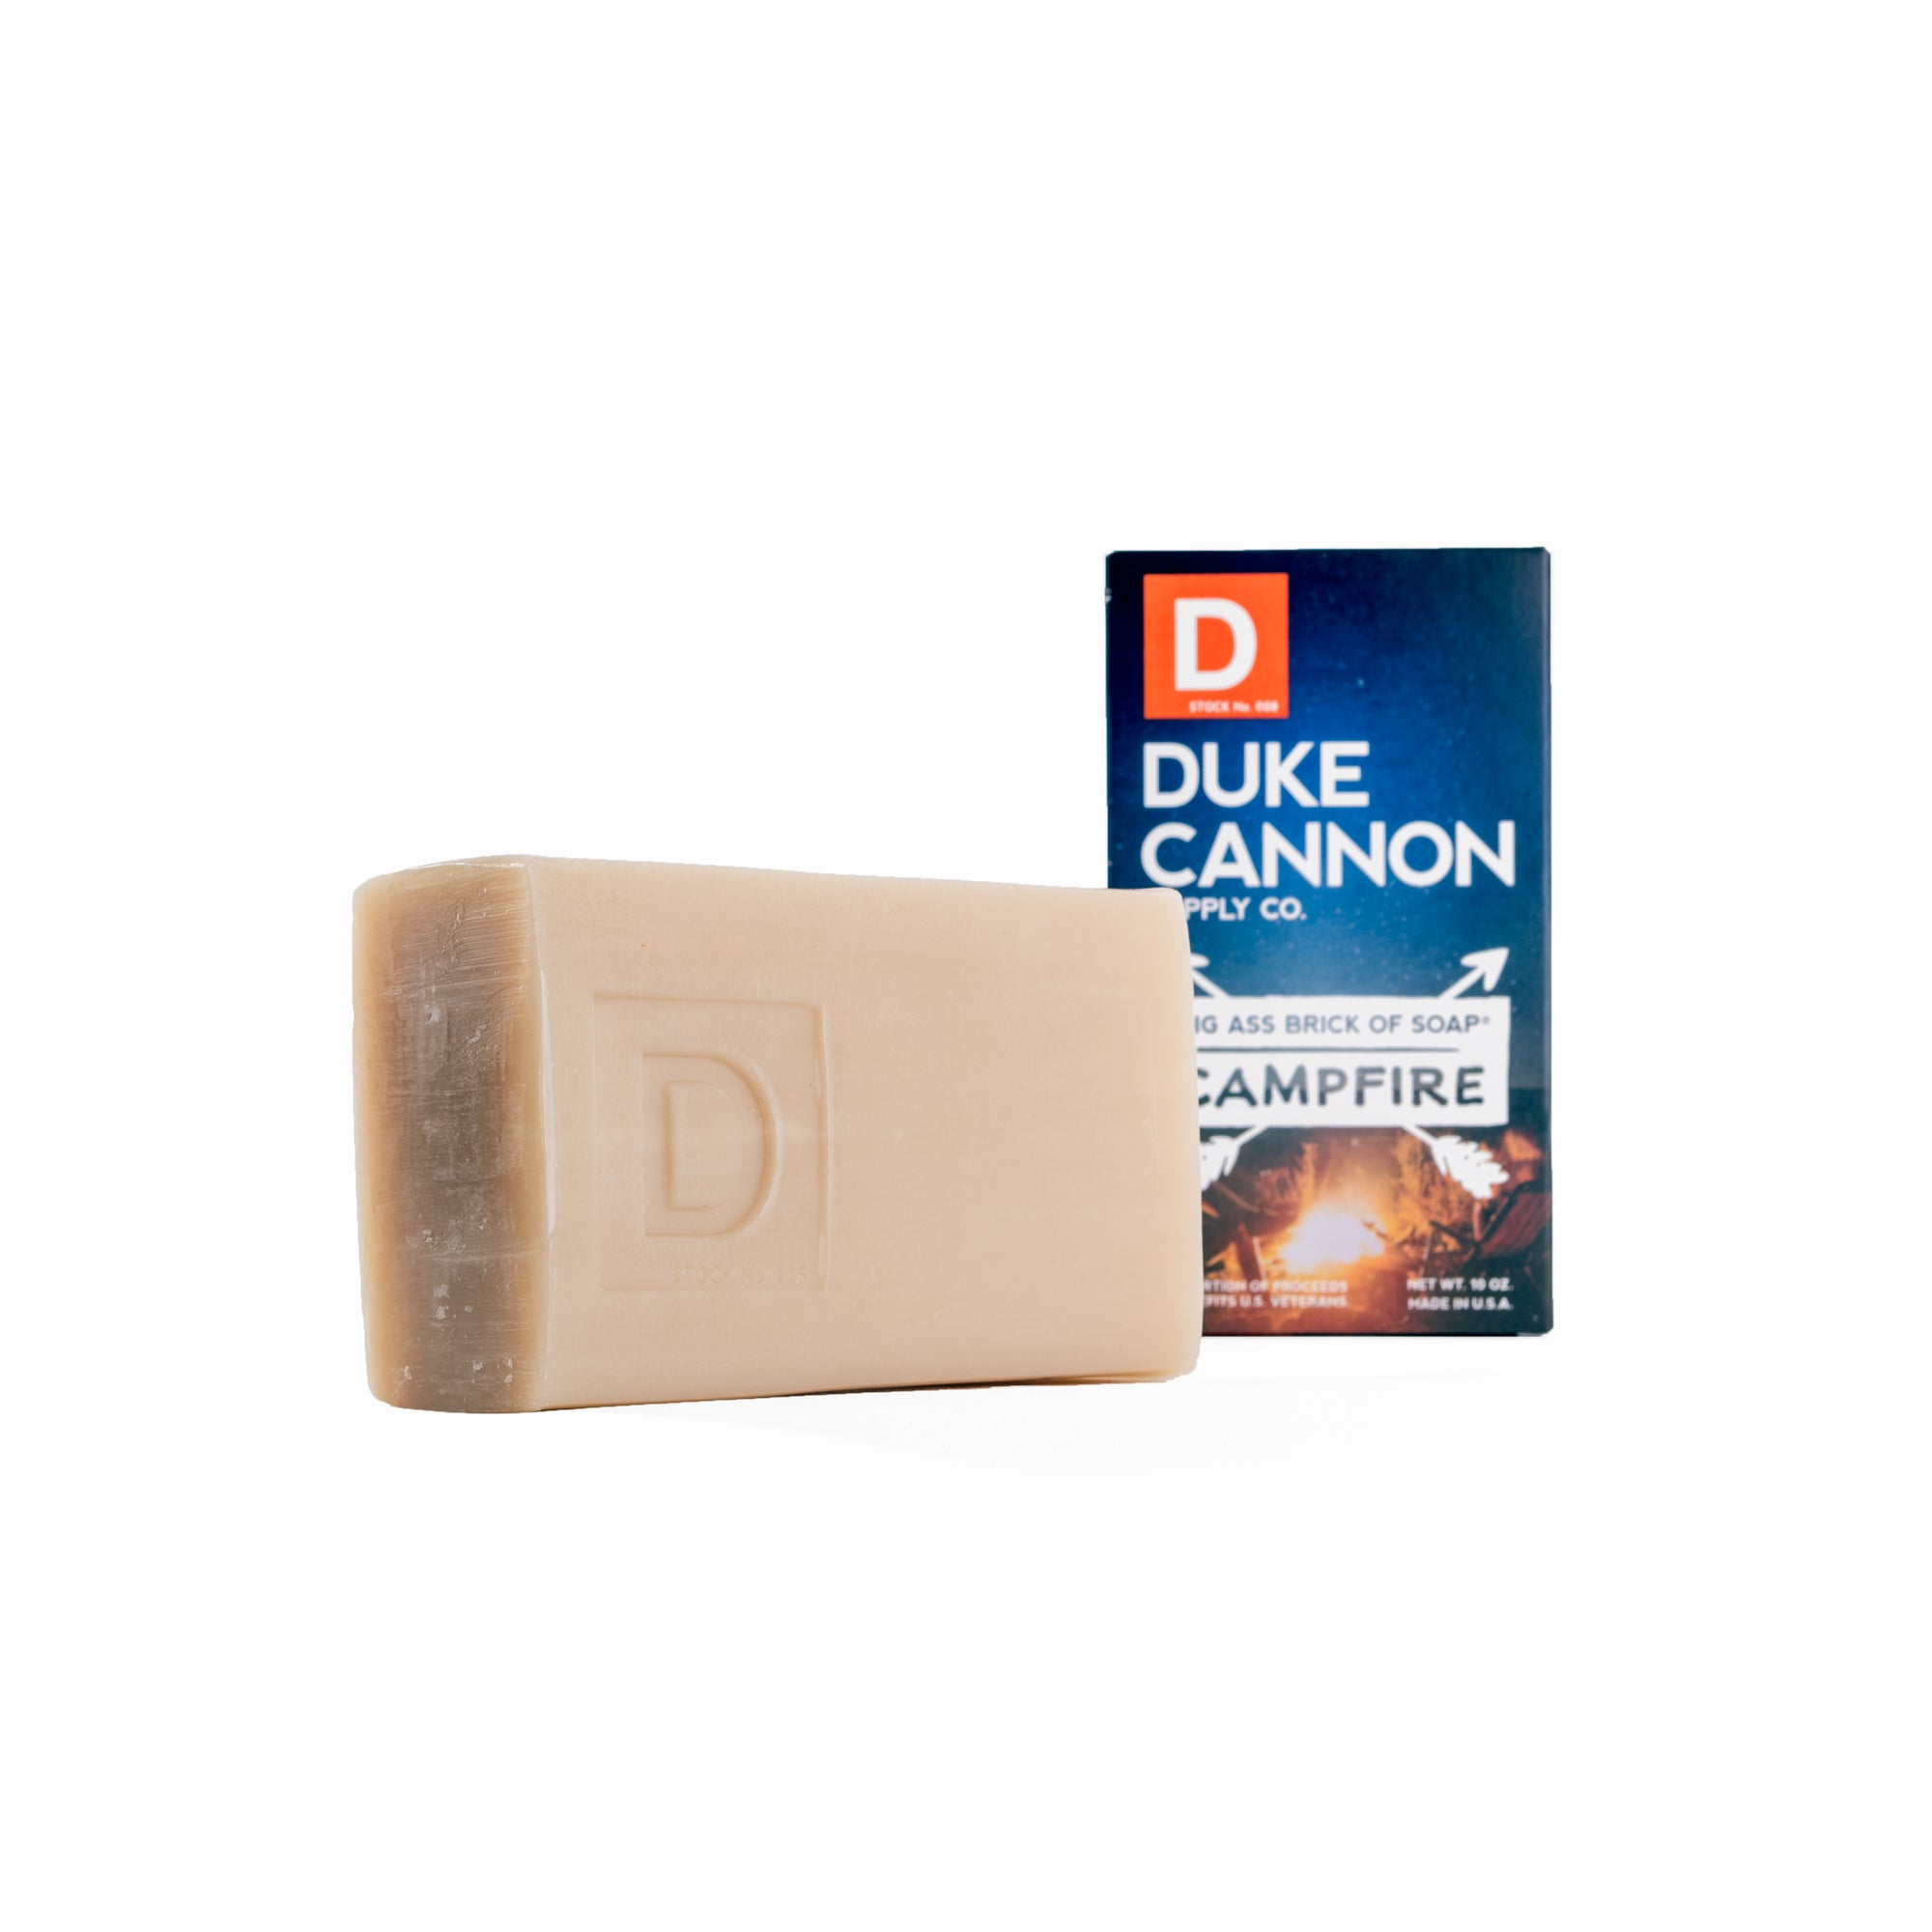 Big Ass Brick of Soap - Campfire - Duke Cannon